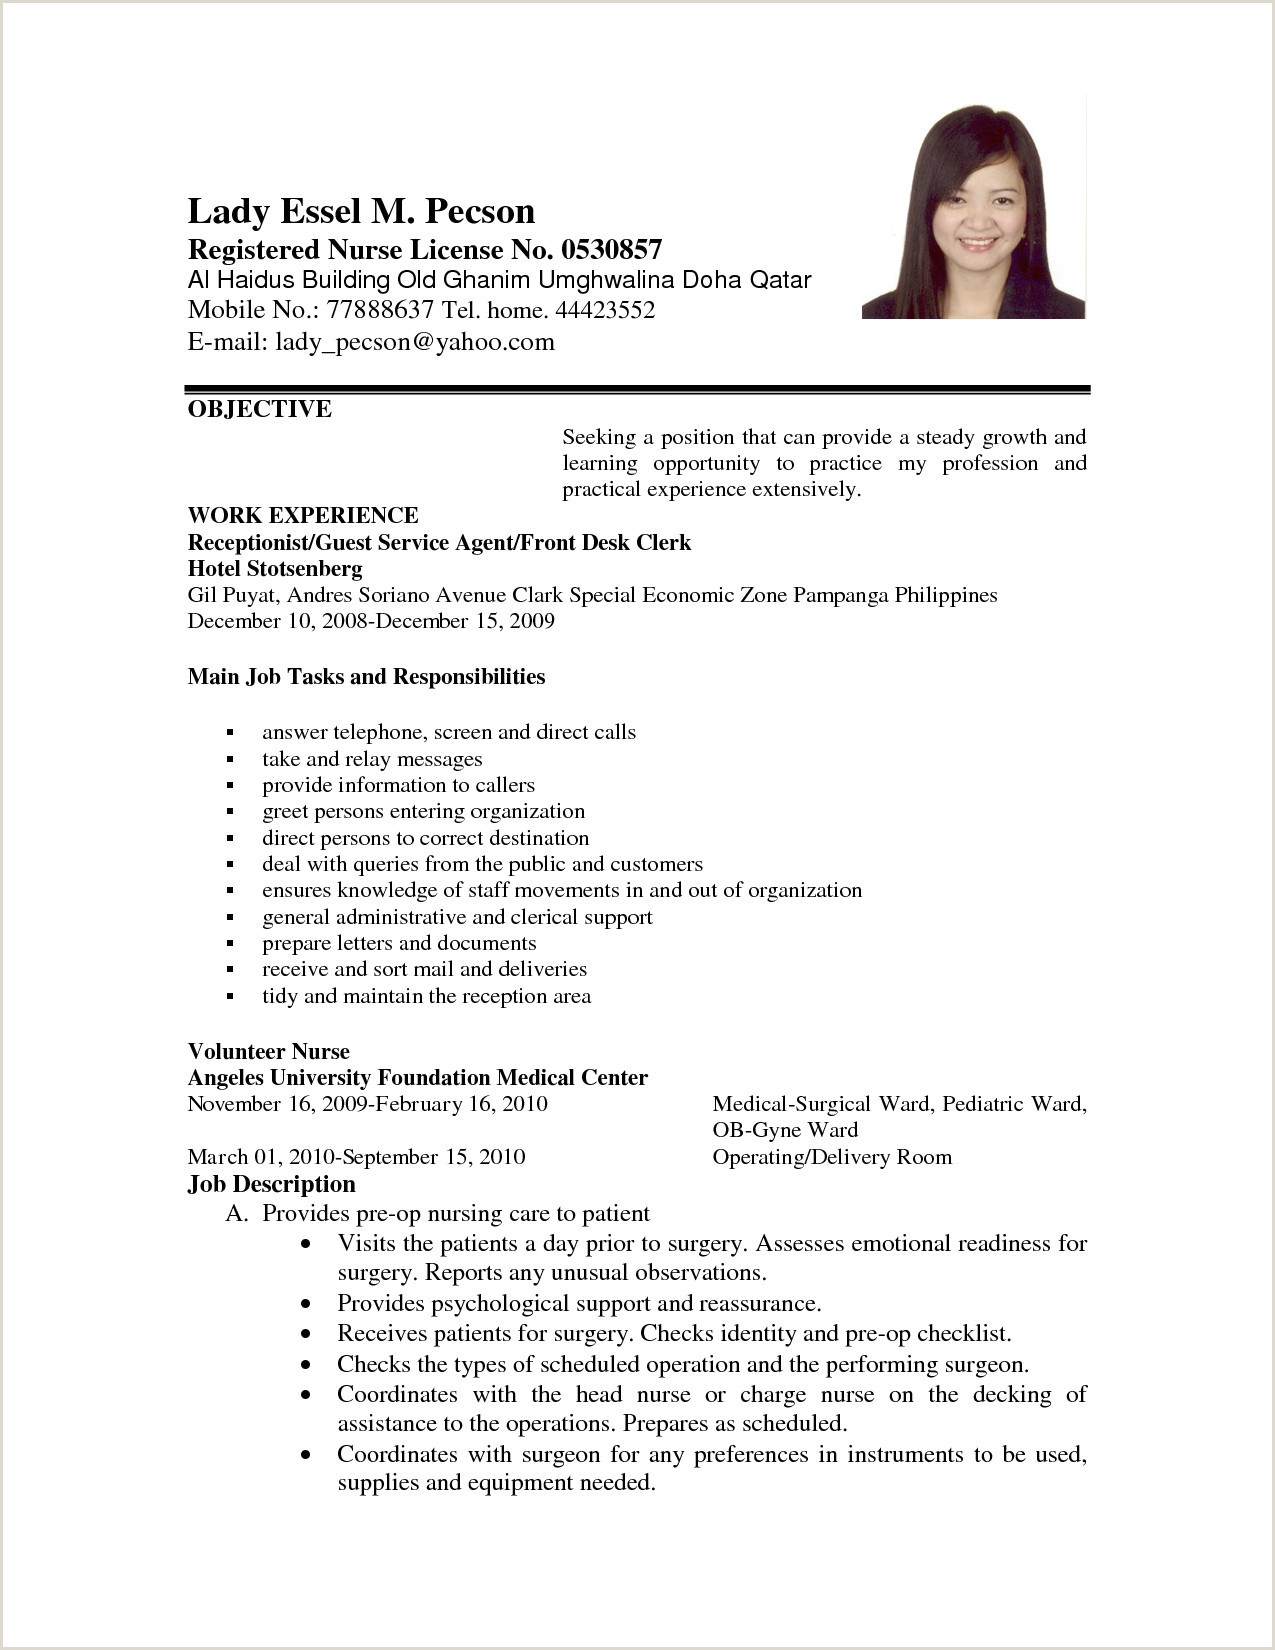 Cv Templates for Job Application Application Letter format for Volunteer Nurse order Custom